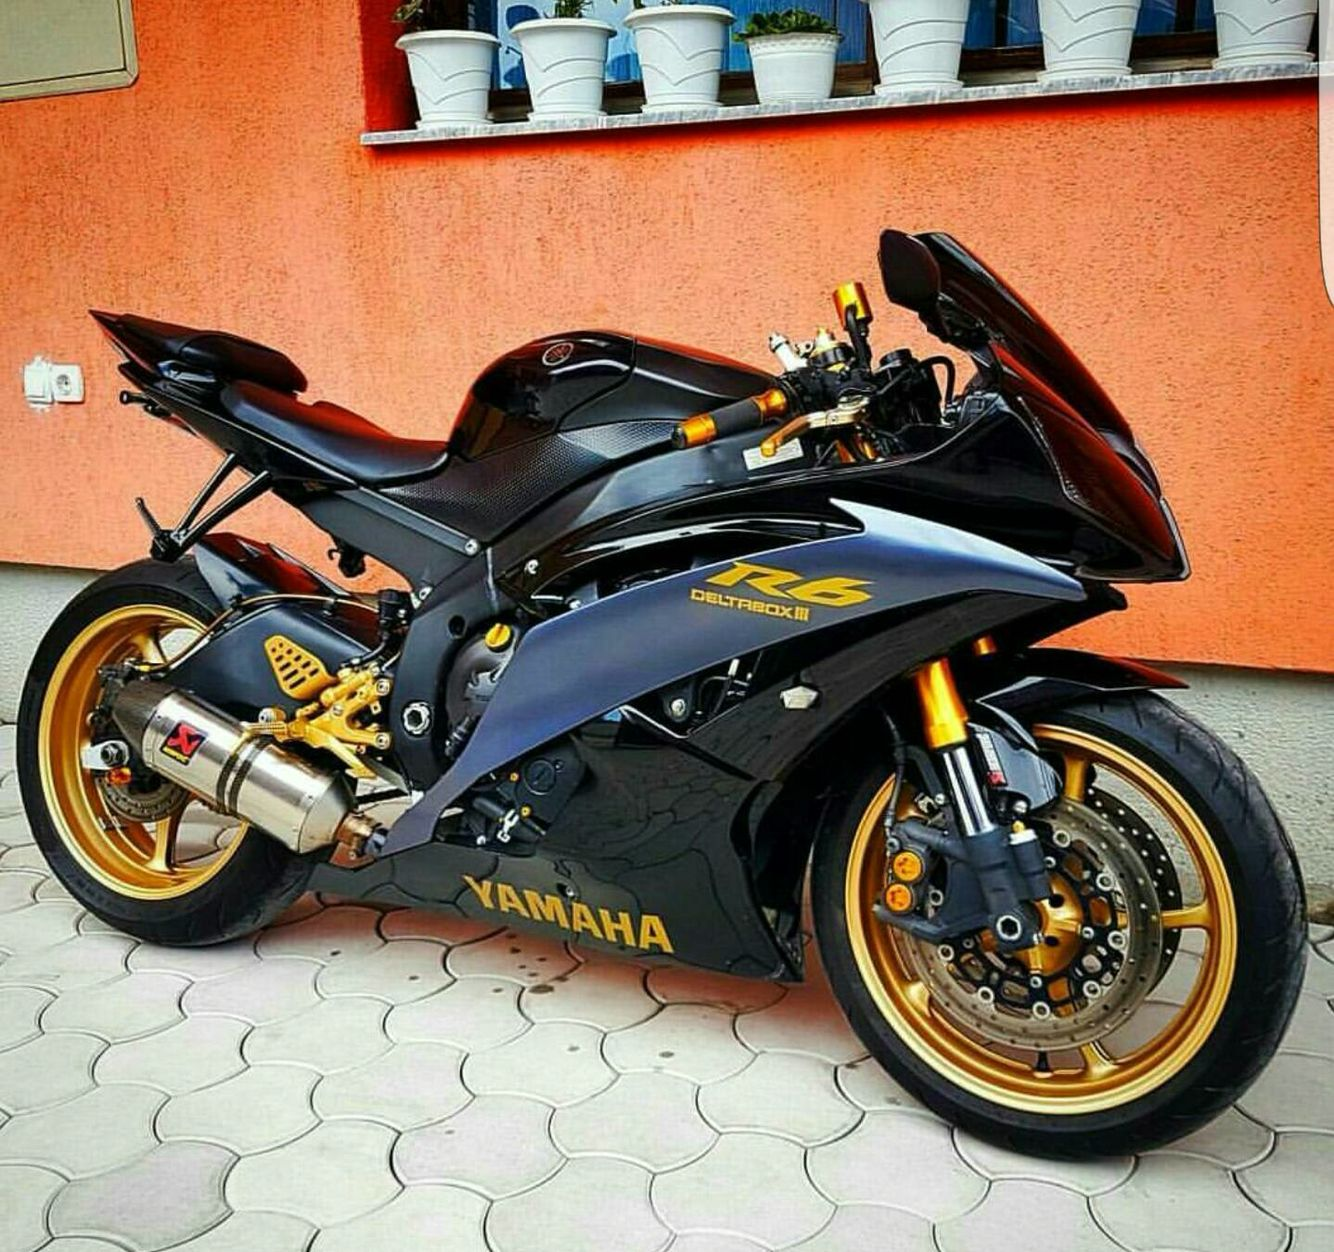 yamaha r6 stay scheming stay stylish pinterest yamaha r6 cars and sportbikes. Black Bedroom Furniture Sets. Home Design Ideas